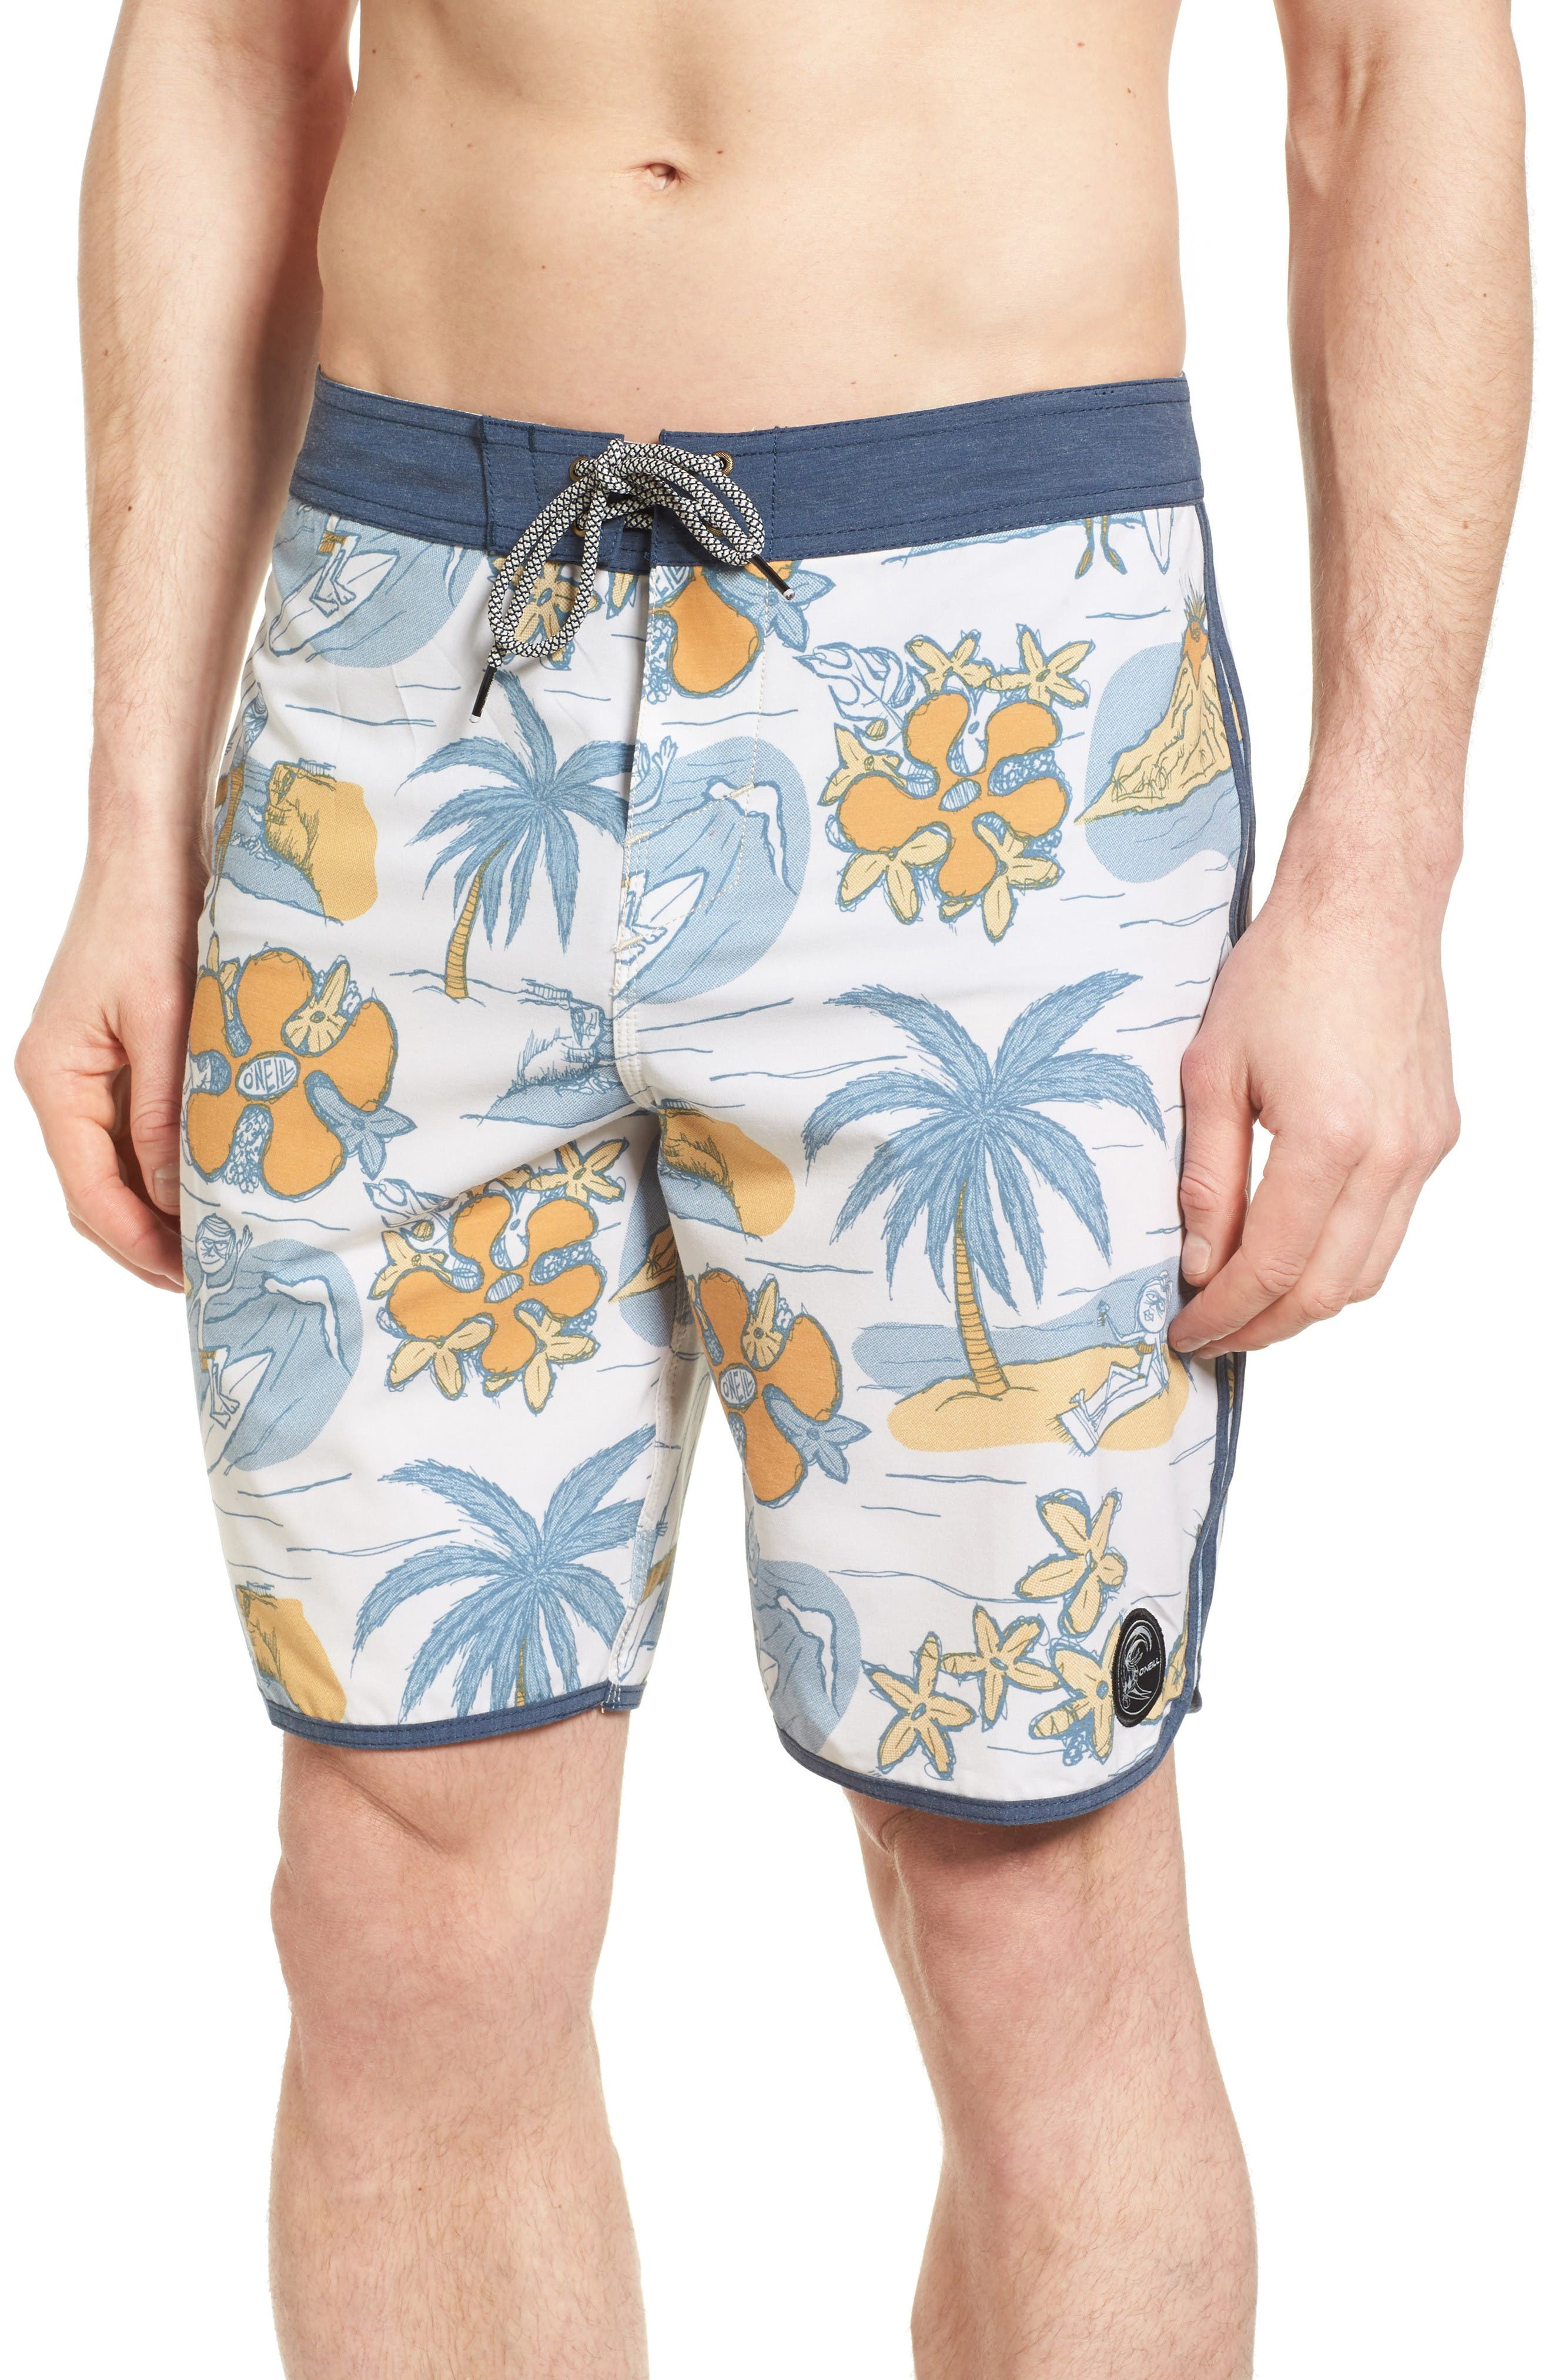 O'Neill Hyperfreak Nick Simich Board Shorts